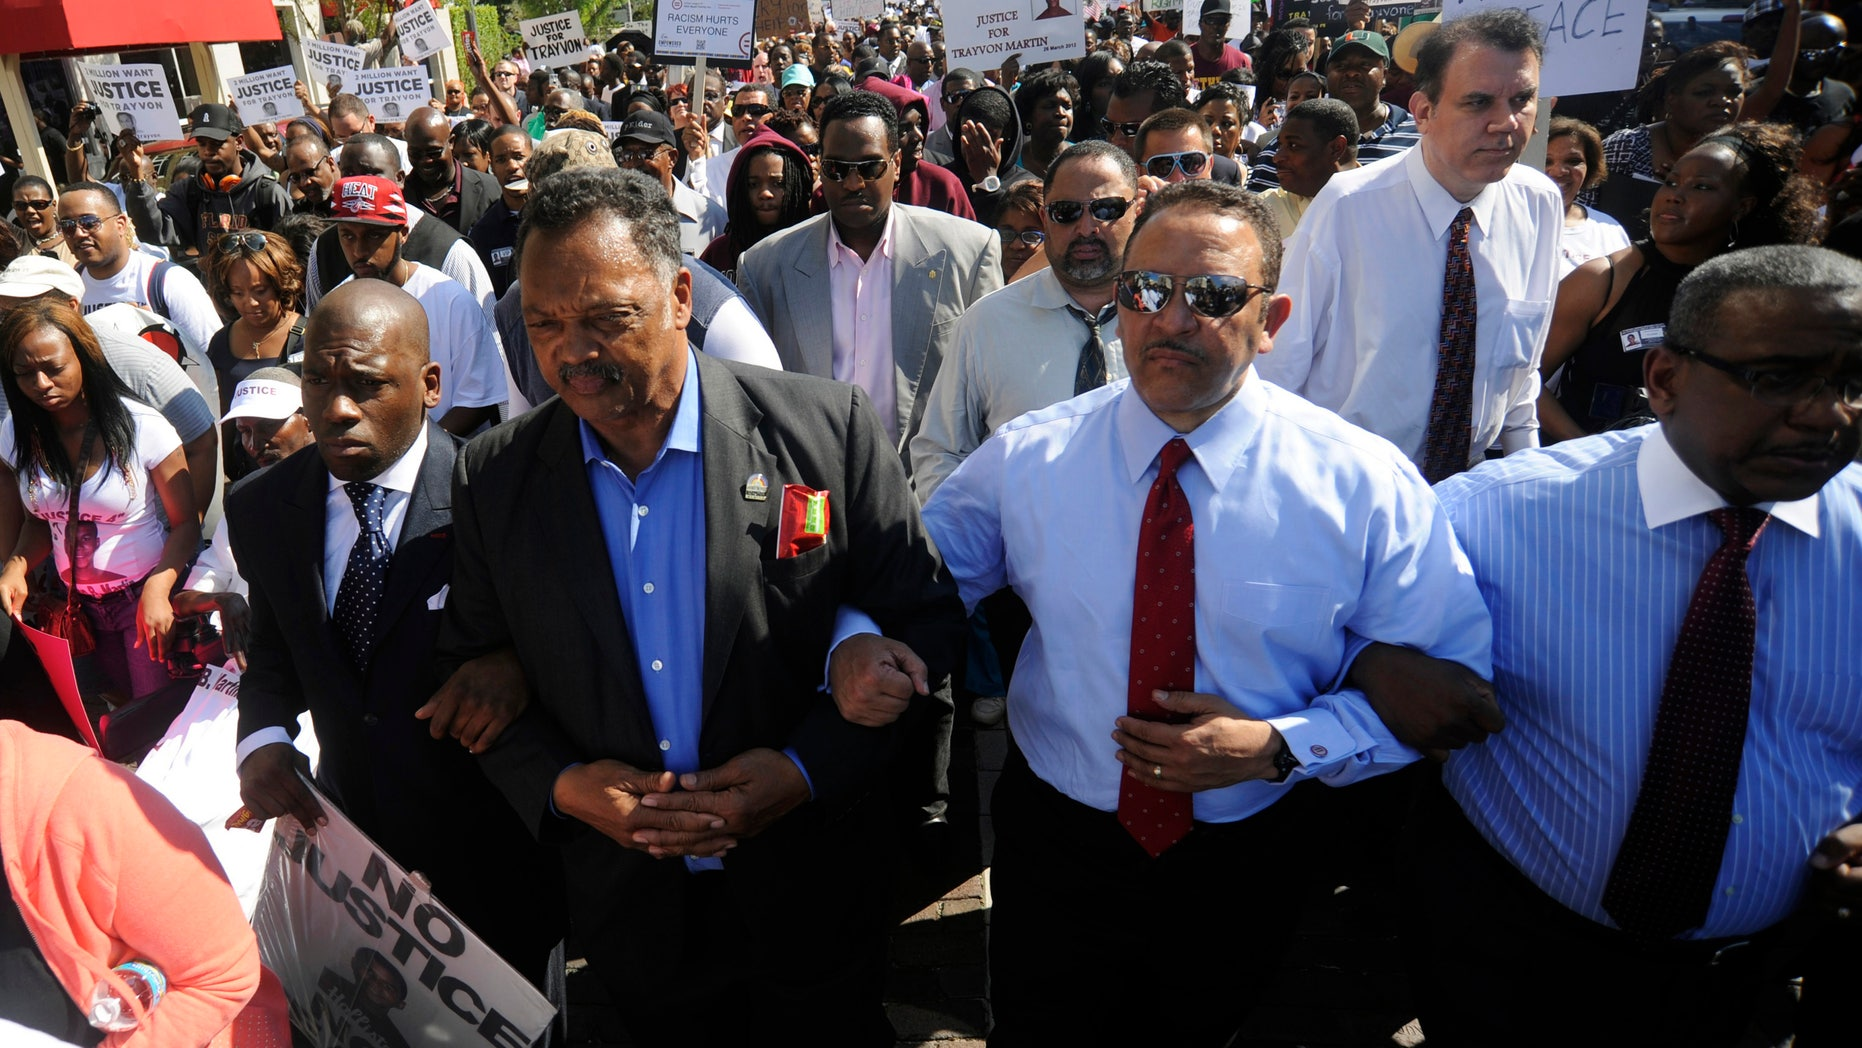 FILE: March 26, 2012: The Rev. Jesse Jackson (C) and Pastor Jamal Bryant, seen in a Sanford, Fla., march, are among the country's most influential black church leaders. Some are telling their congregations not to vote in November.